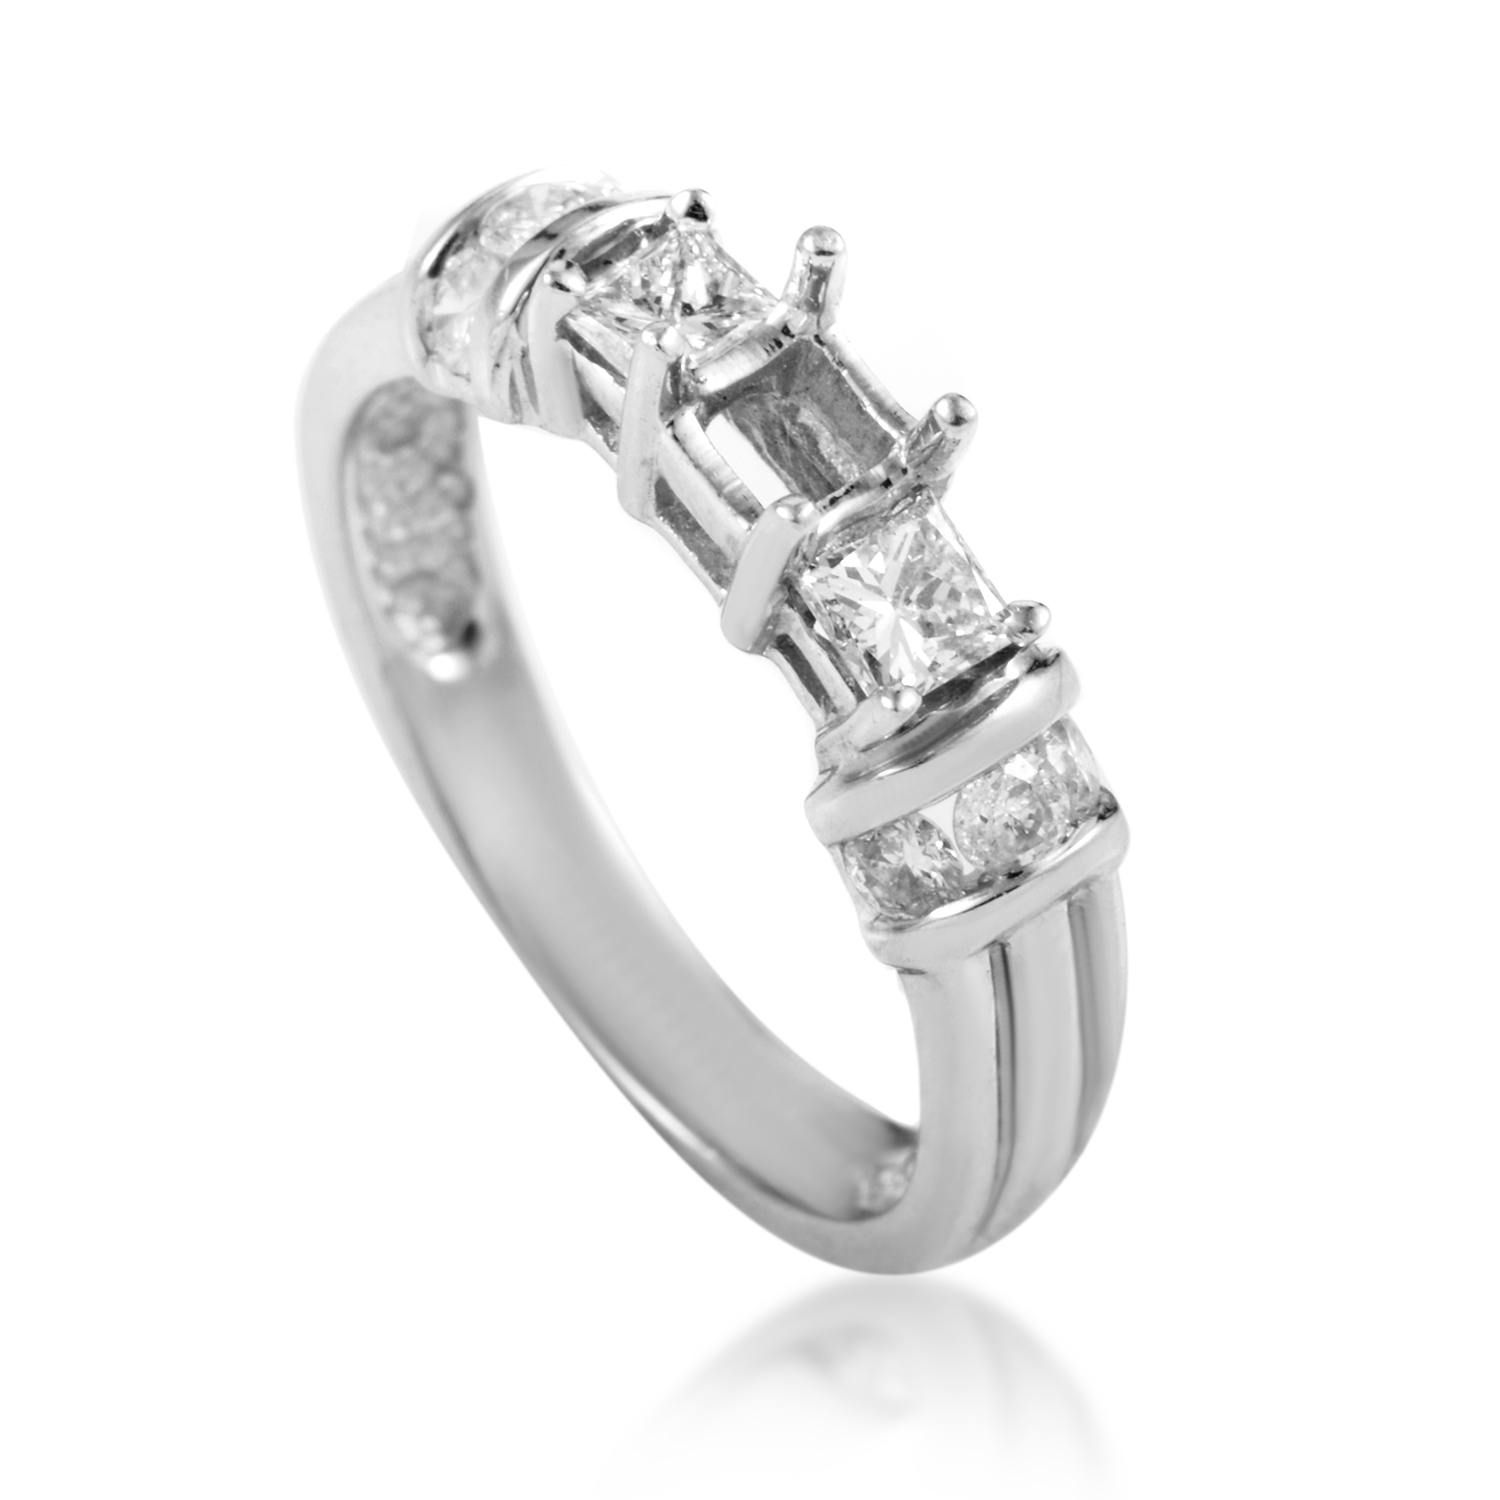 14K White Gold Diamond Engagement Ring Mounting EN4-061162W